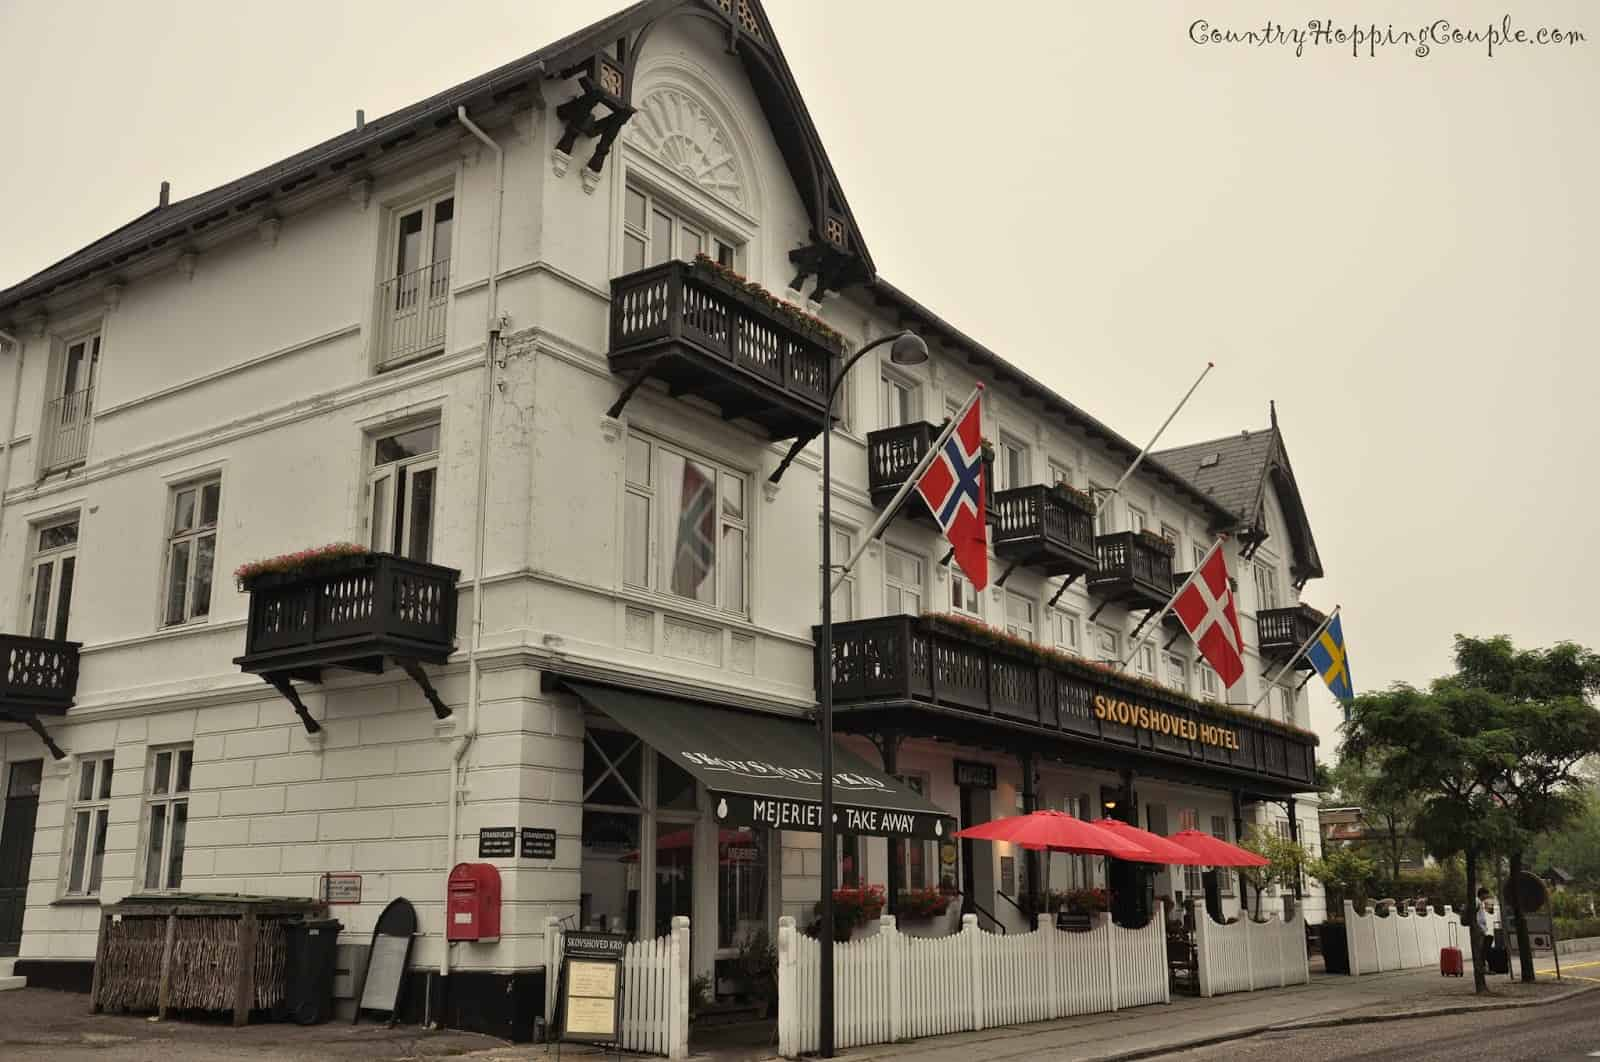 Skovshoved Hotel – Chic, Stylish yet Historic!